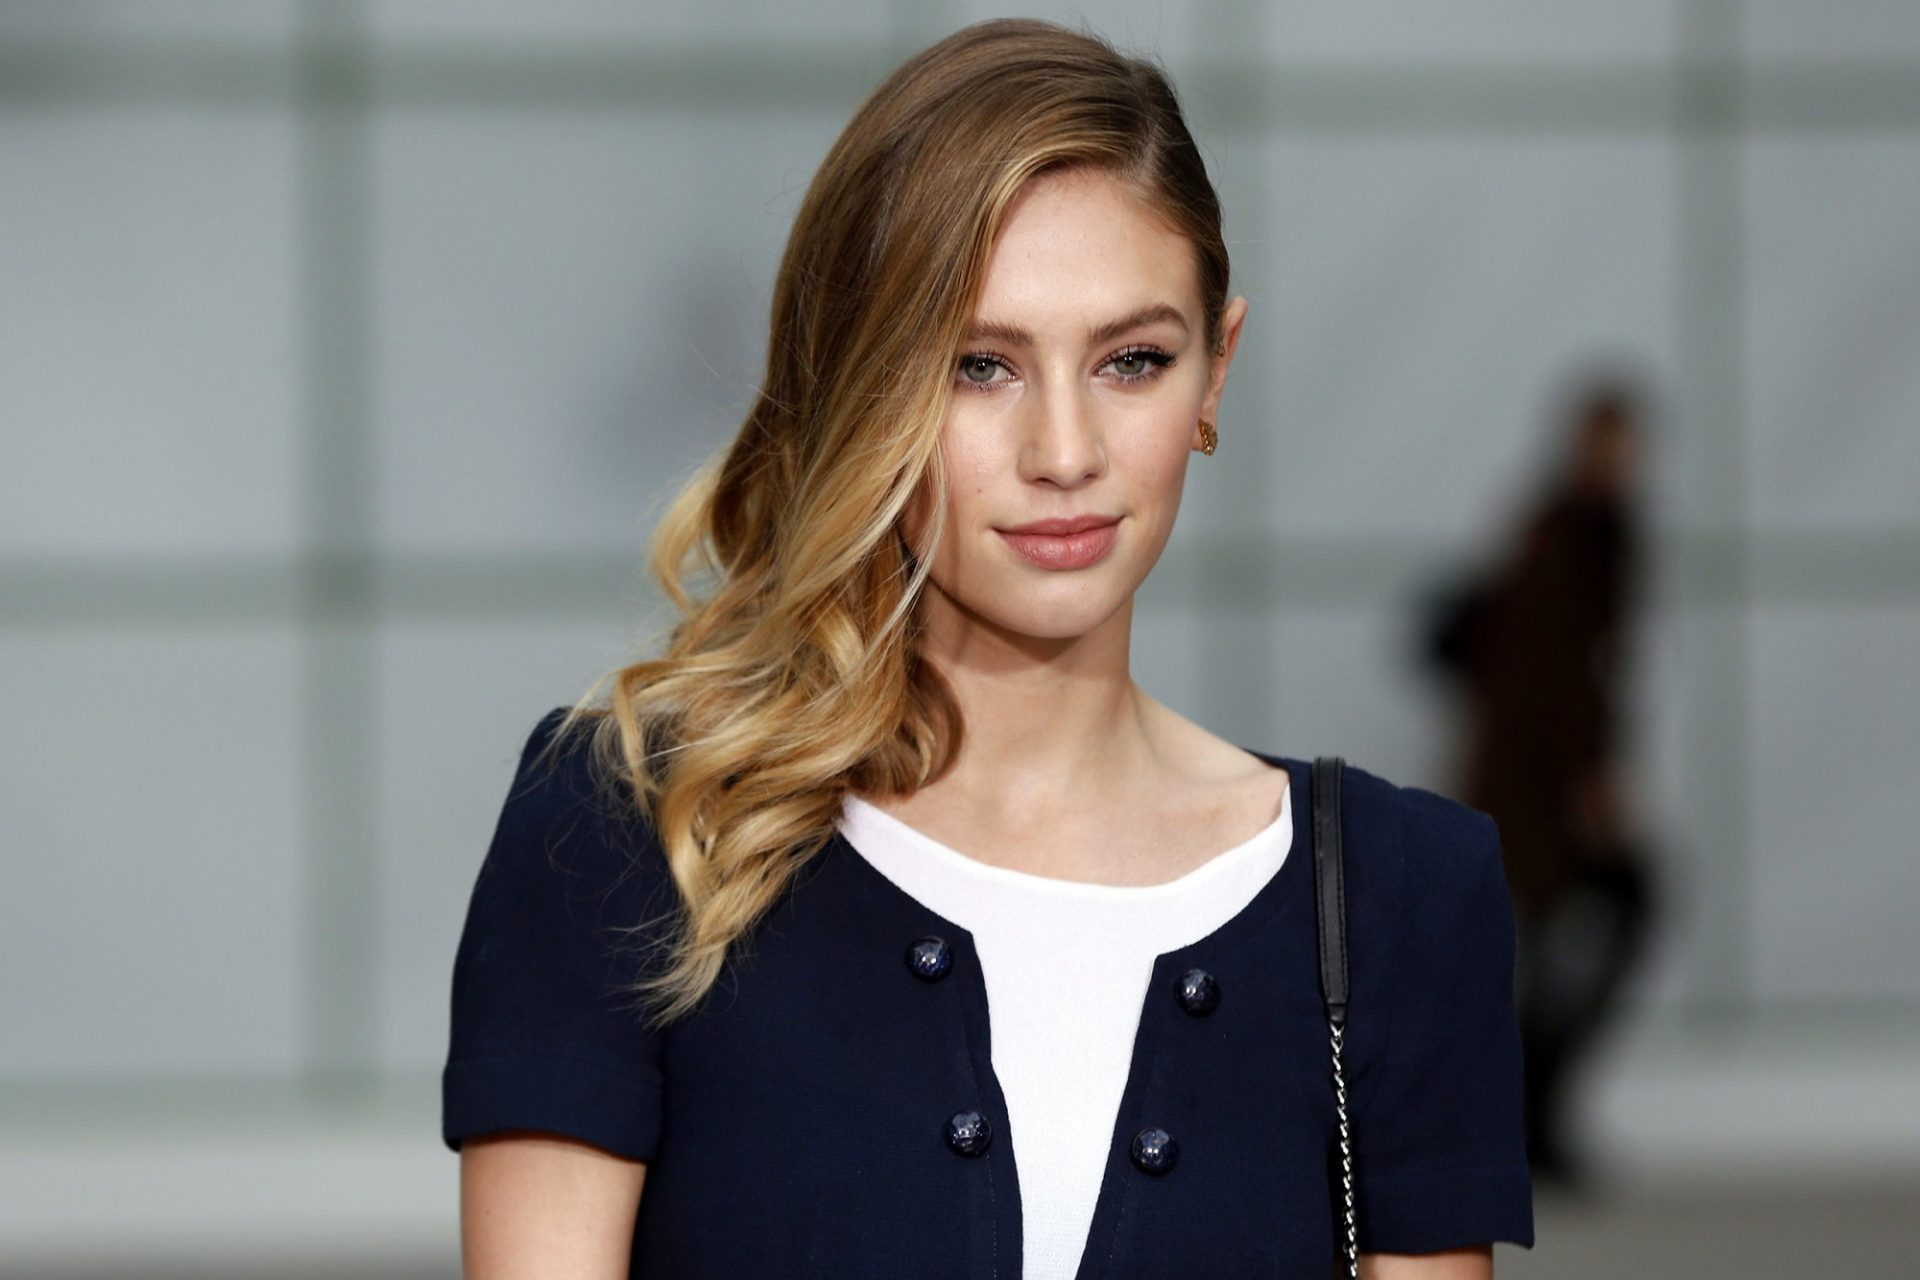 Dylan Penn Parents, Age, Height, Boyfriend, Movies